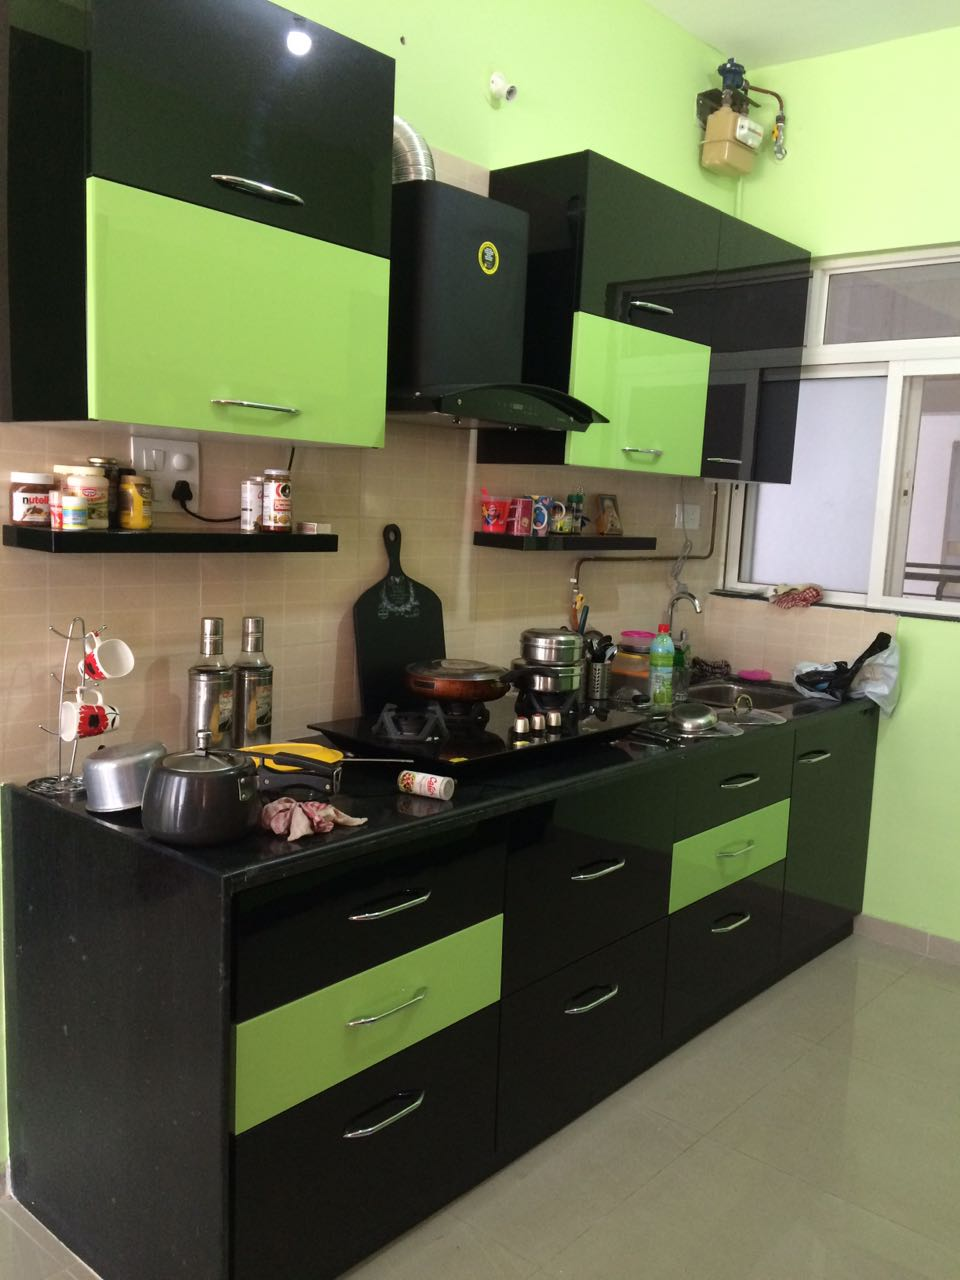 modular kitchen pune price Balewadi Top interior brands reviews, experts planner with customize & modern style model- With the help of our design and planning services team, we can help design With our team of experts on standby, building a gorgeous workplace is as have an amazing new space to be proud of, custom built just for you.